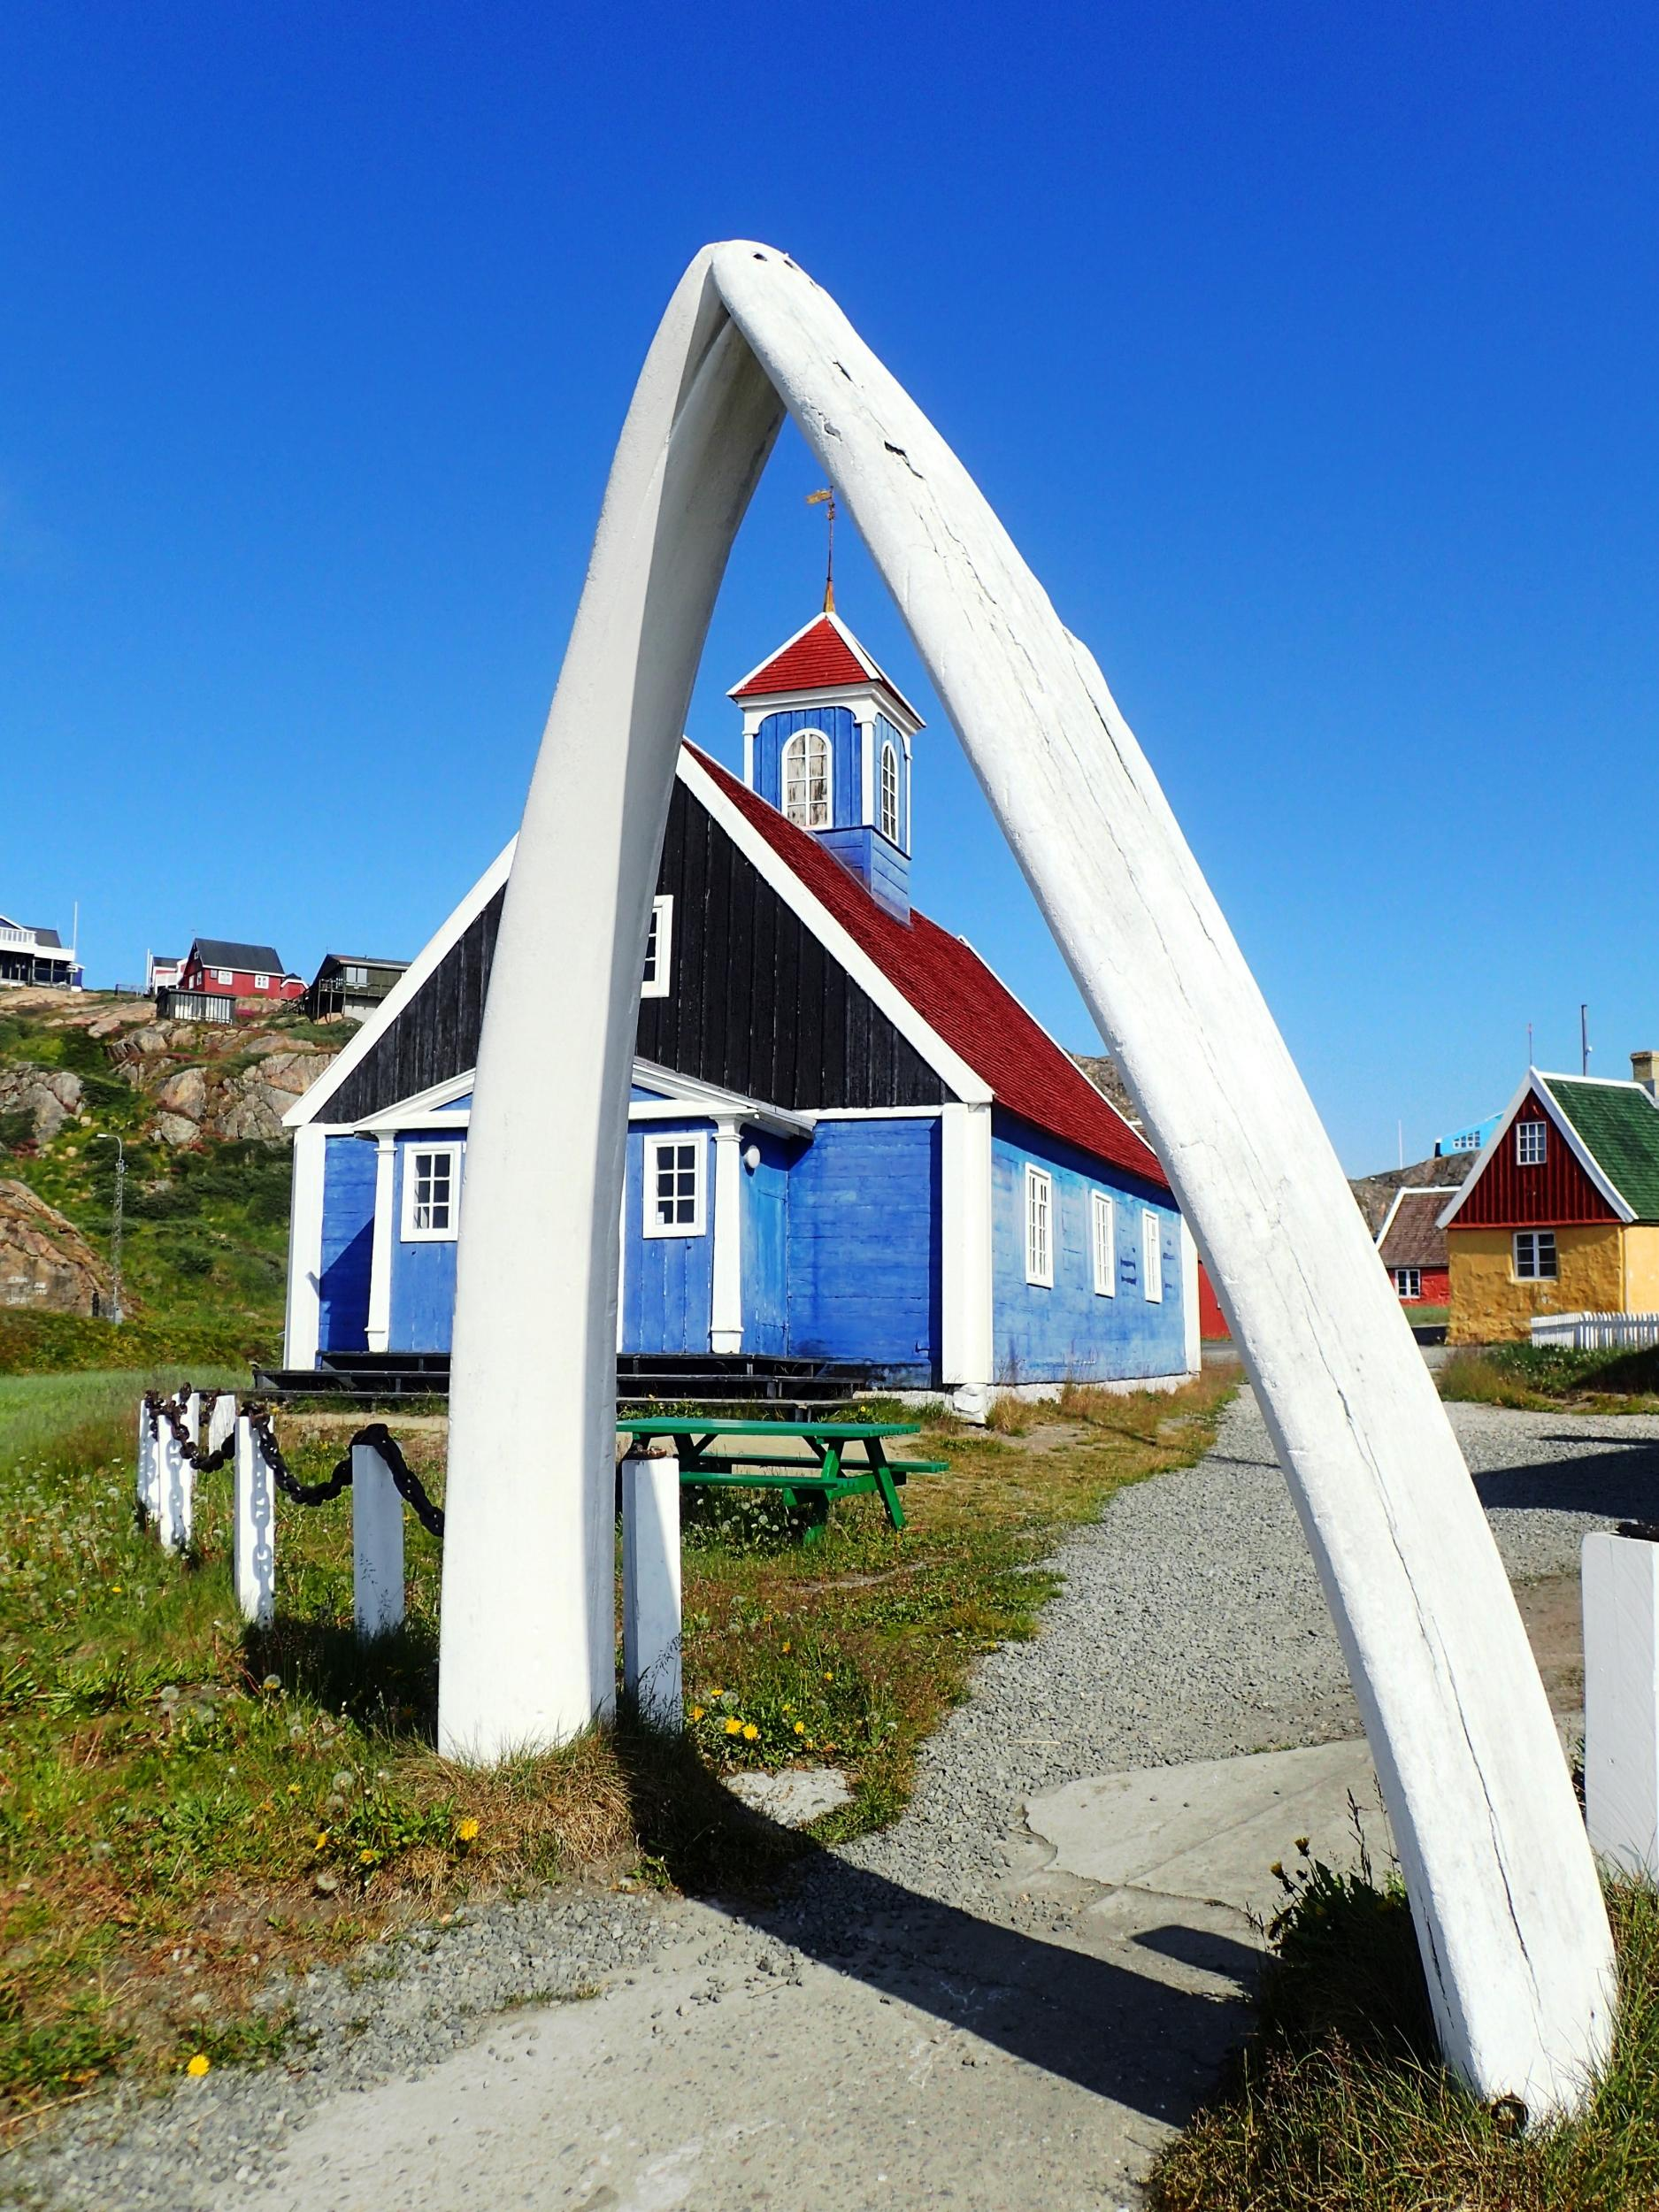 Old Church and Whale Jaw Bones. Photo by Allan Liddle.